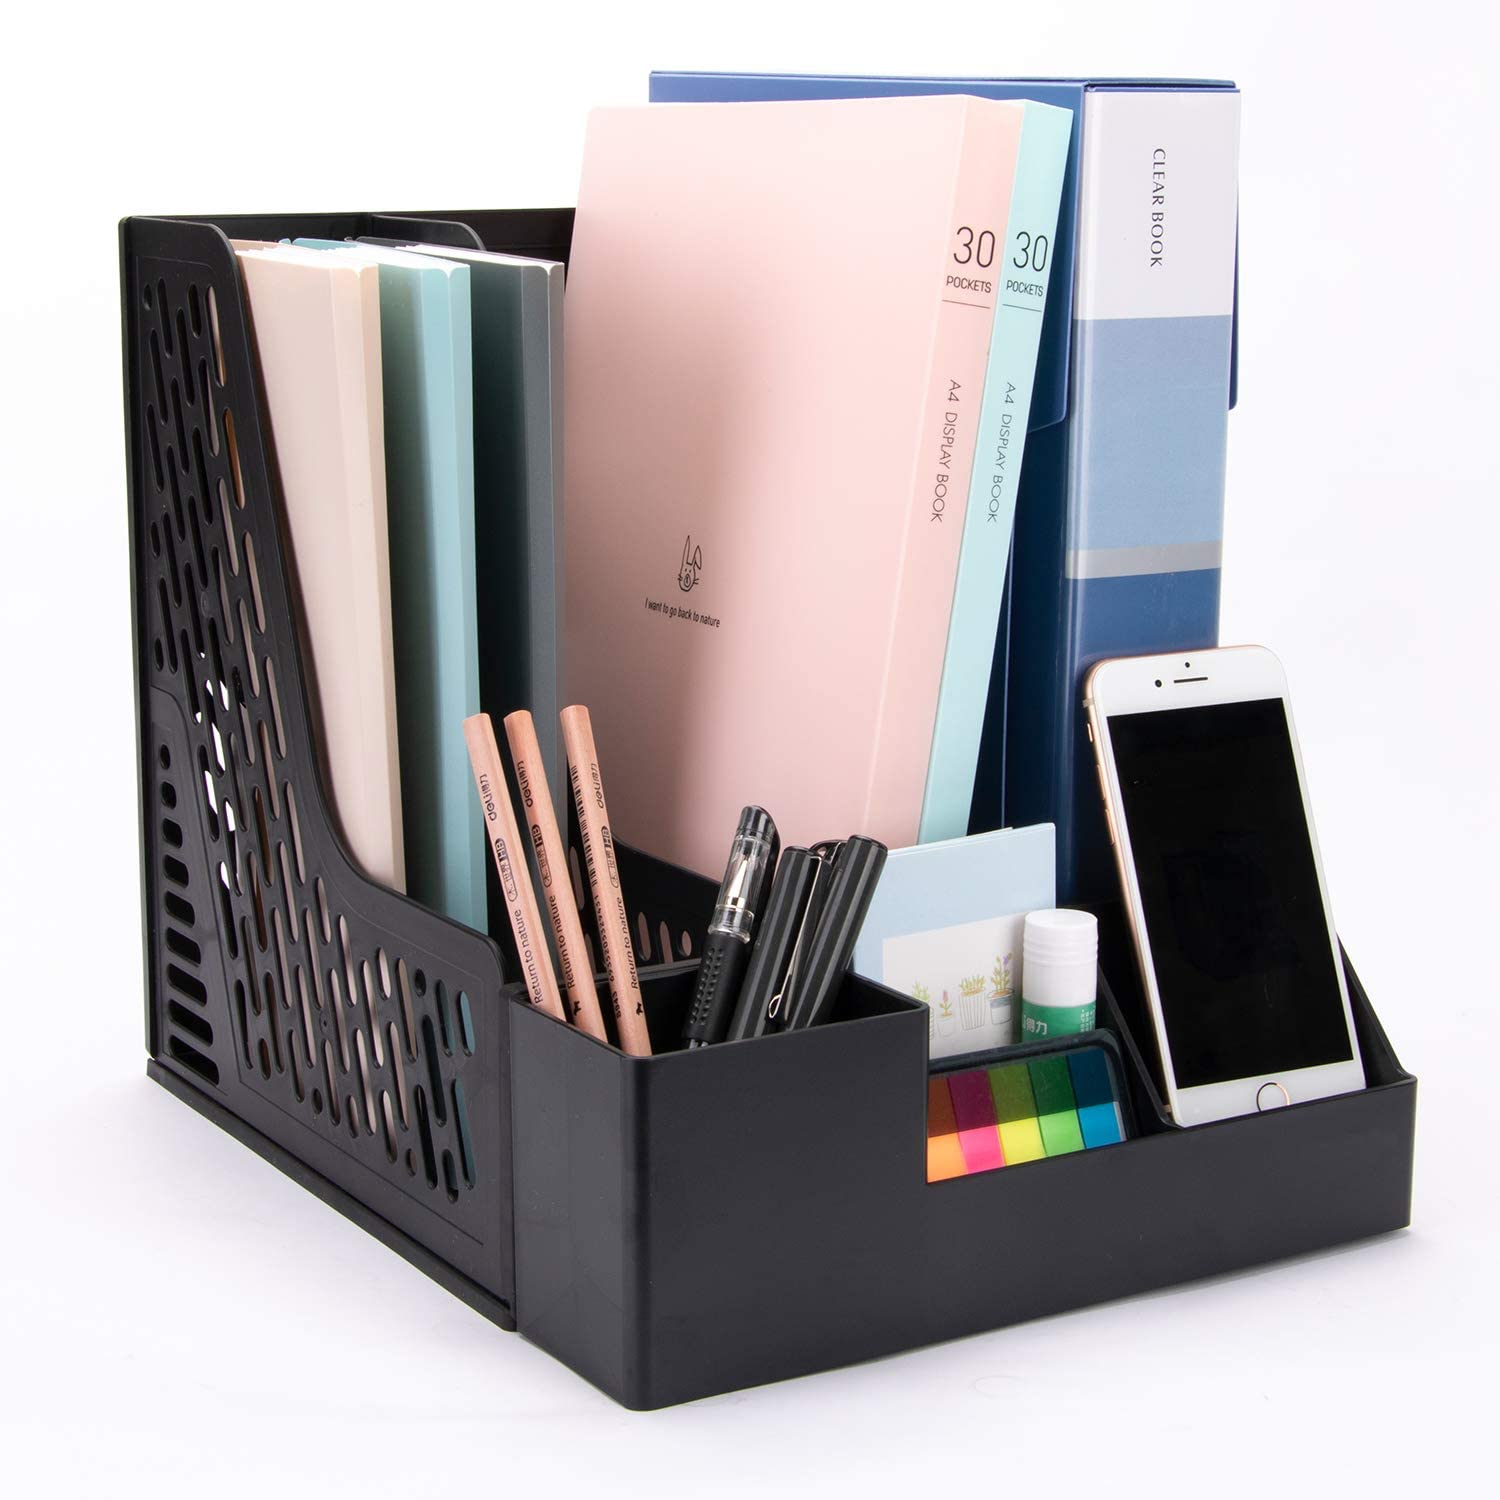 Deli Desk Organizer with Extra Storage Case, Large Space Desktop Magazine File Holder with 3 Vertical Compartments for Office Organization